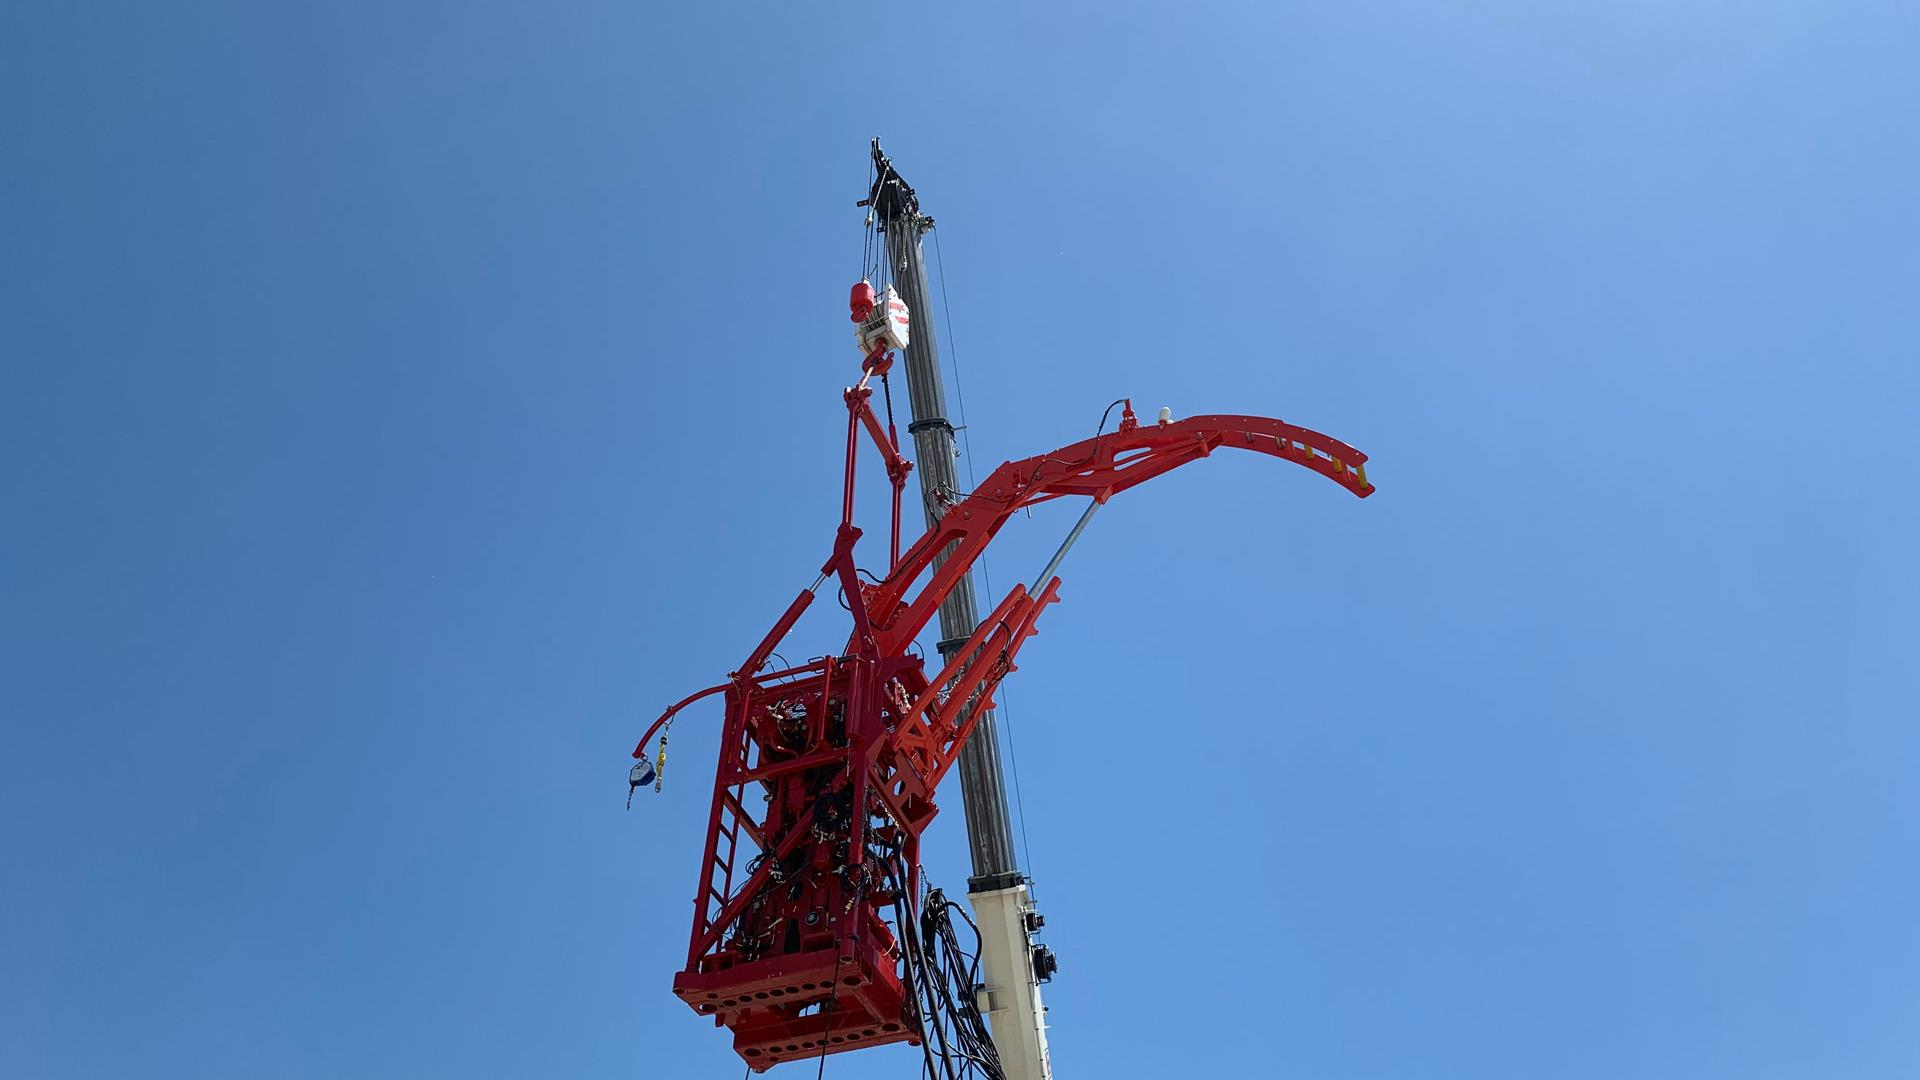 Hydra Rig HR-6120 Injector against a blue sky